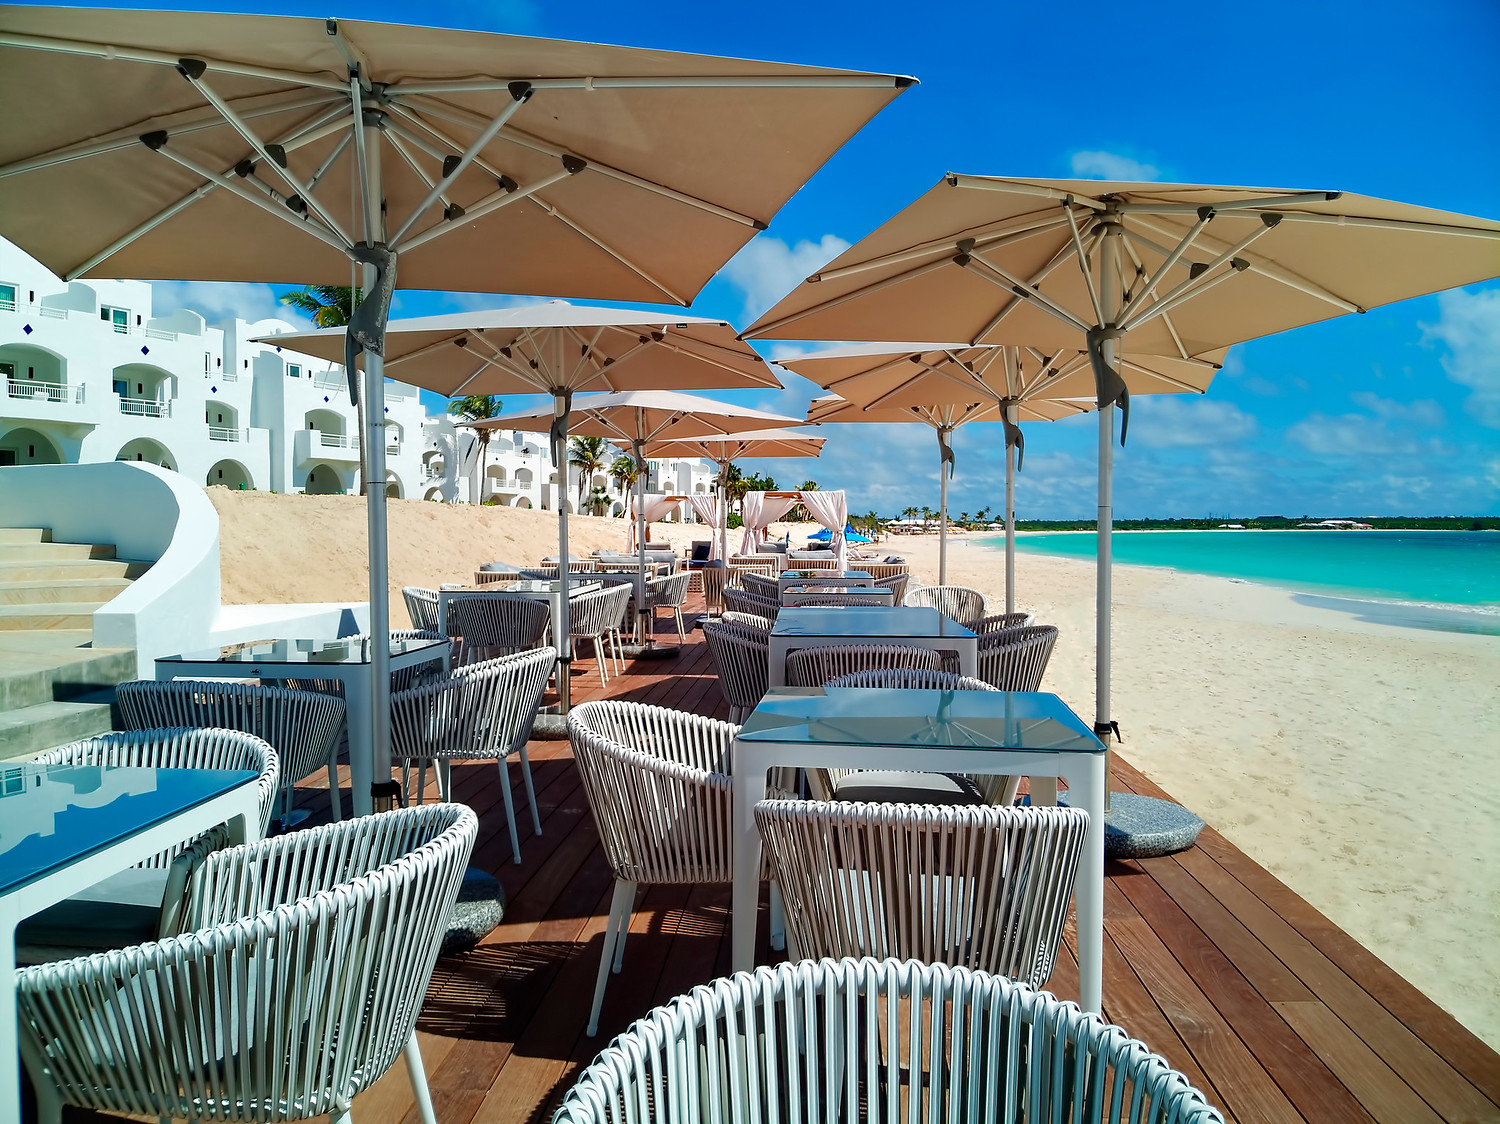 The Beach Bar at Cuisinart in Anguilla, Caribbean.